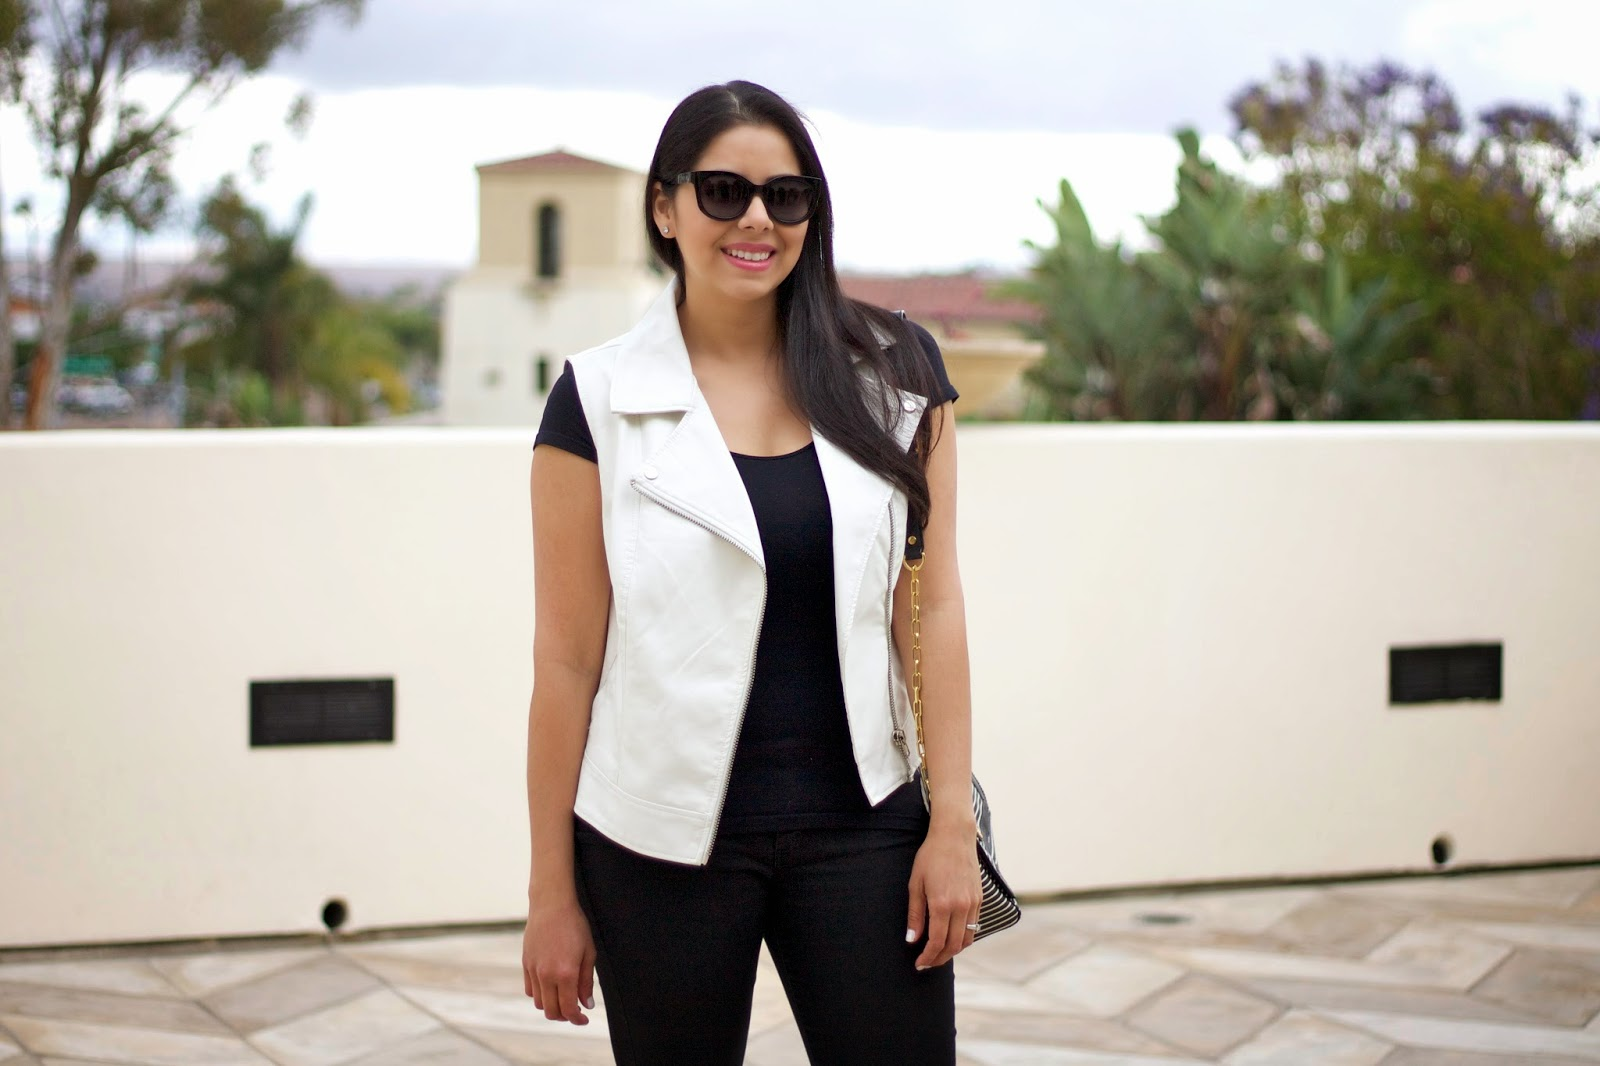 mexcan fashion blogger, black and white outfit, cool ootd, black and white ootd, zipper details on outfit